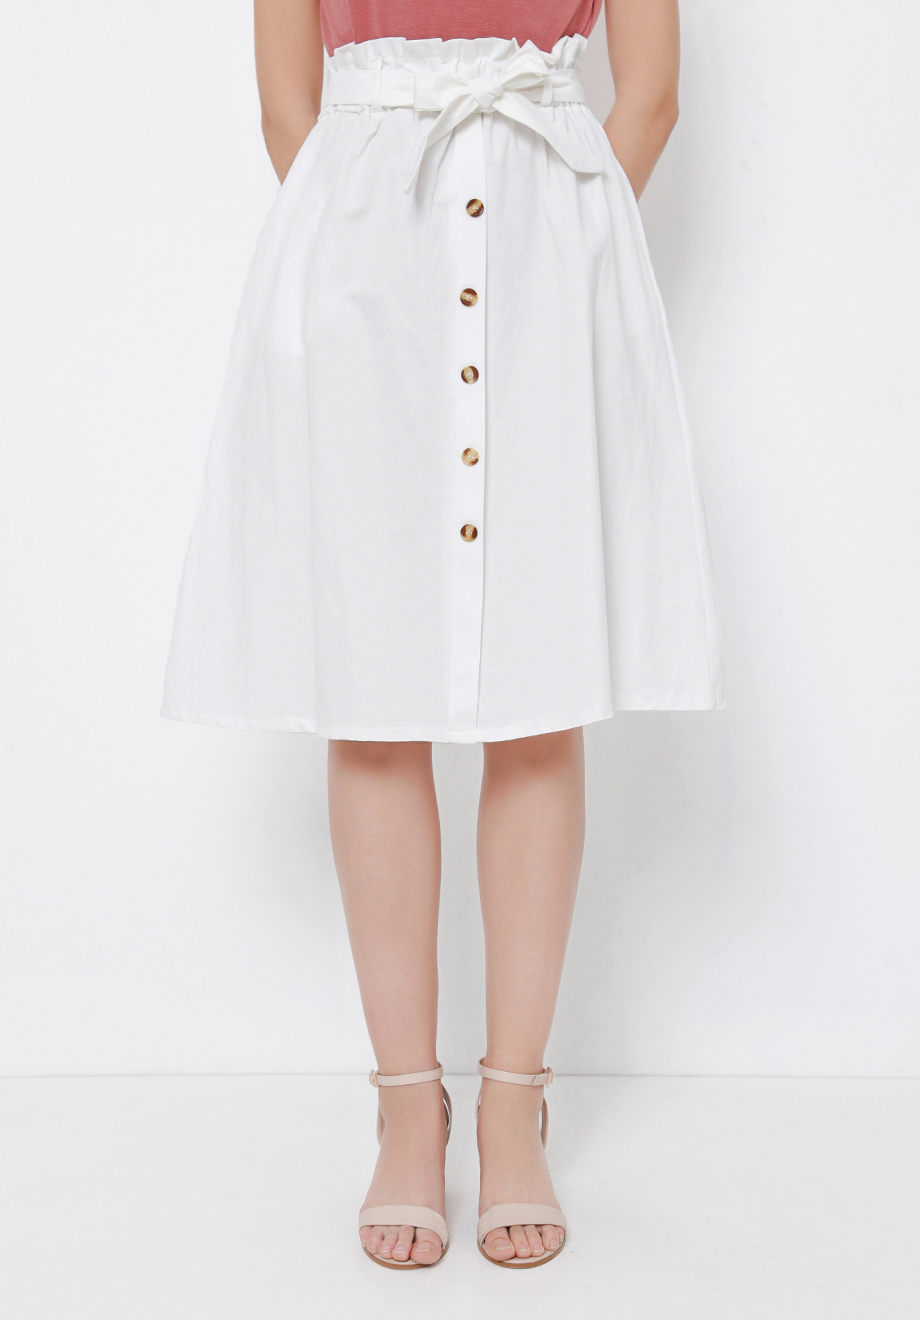 Just Arrived Chocochips Boutique Zelma Dress White Back In Stock Joyce Skirt